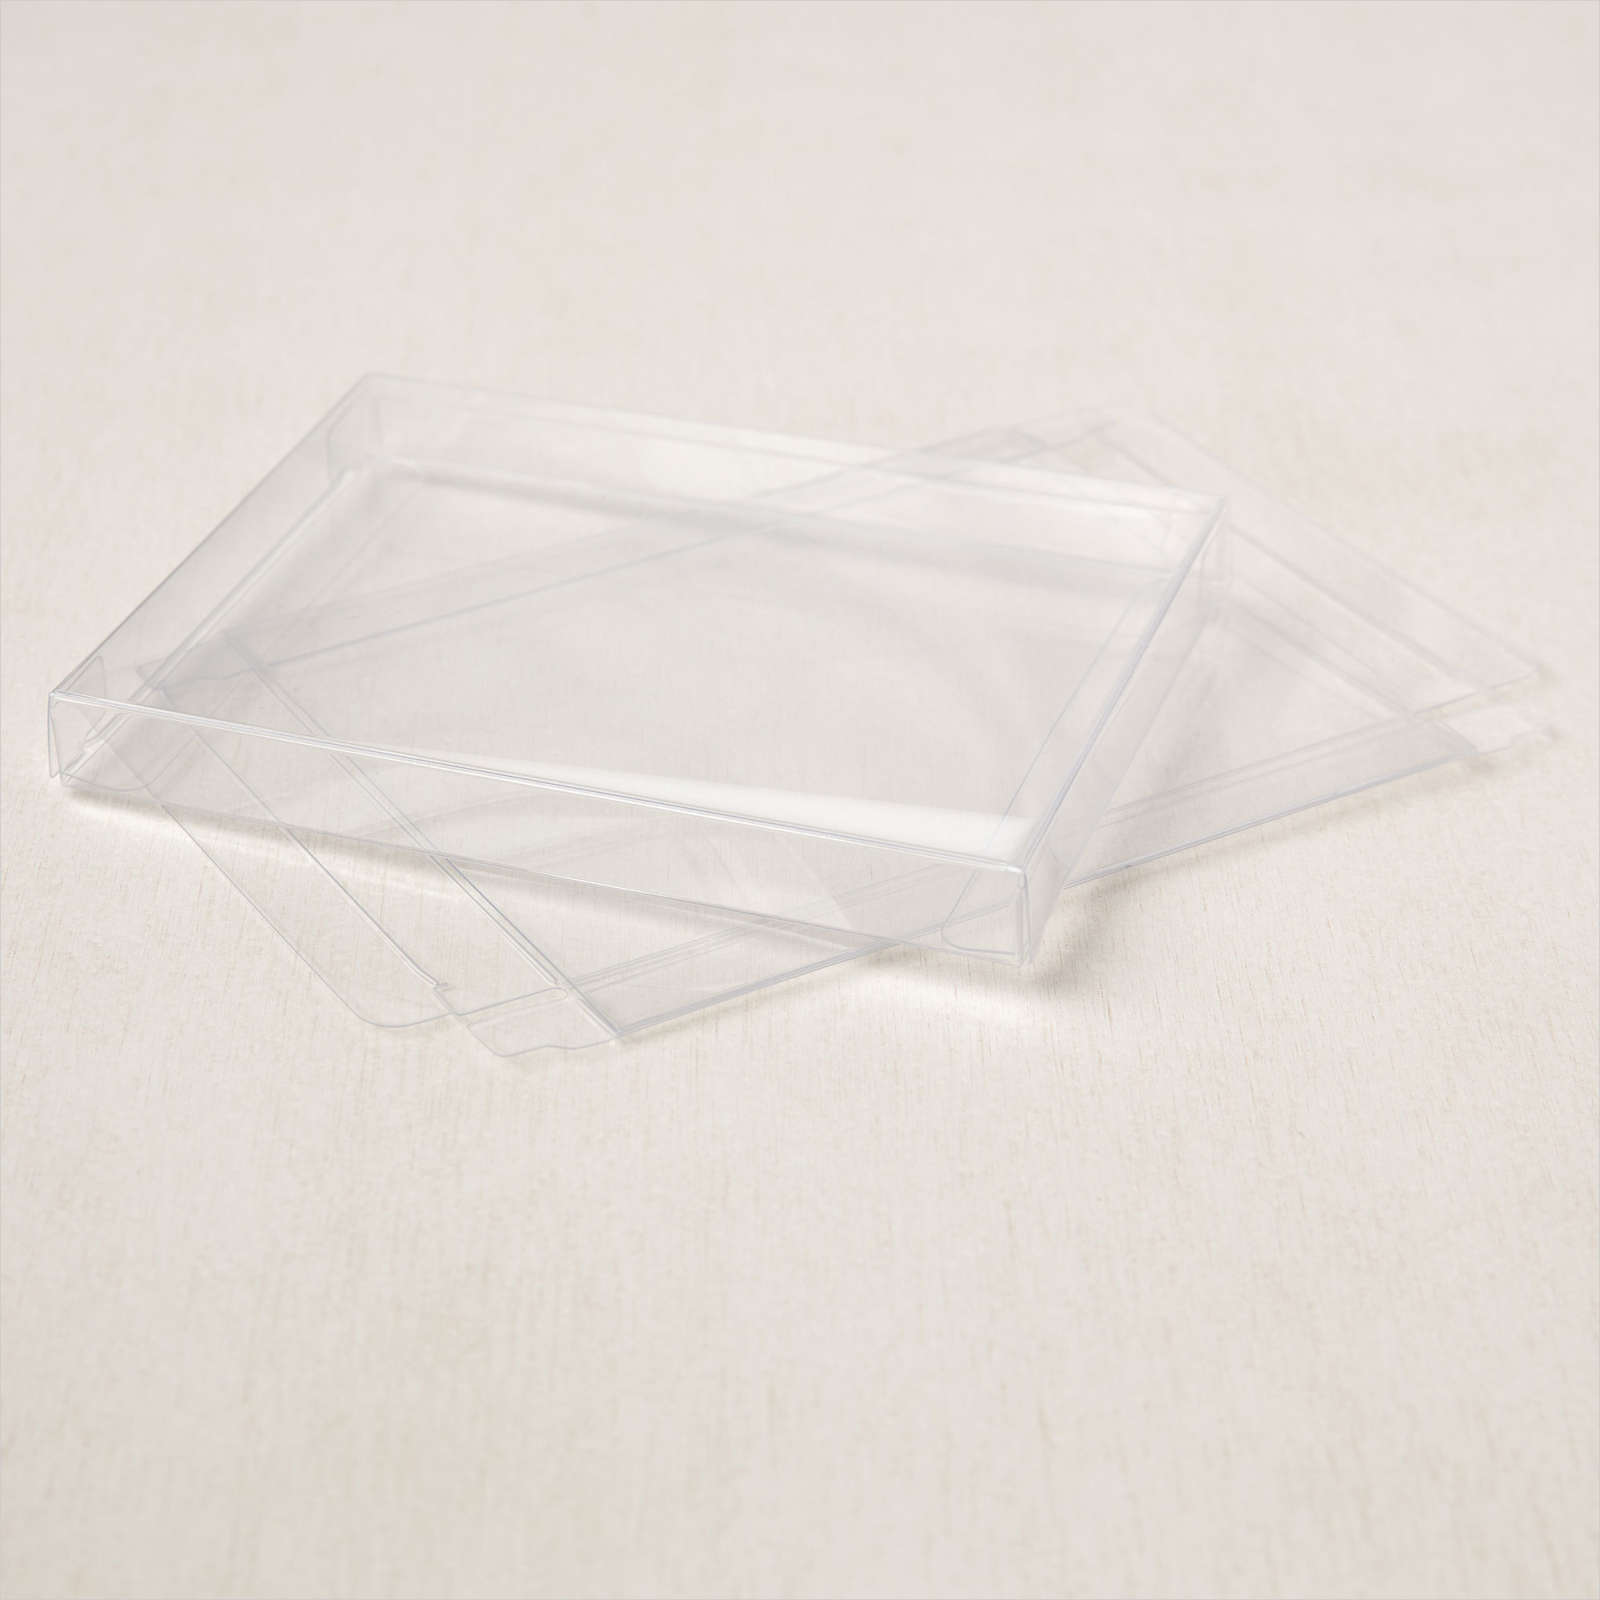 ACETATE CARD BOXES